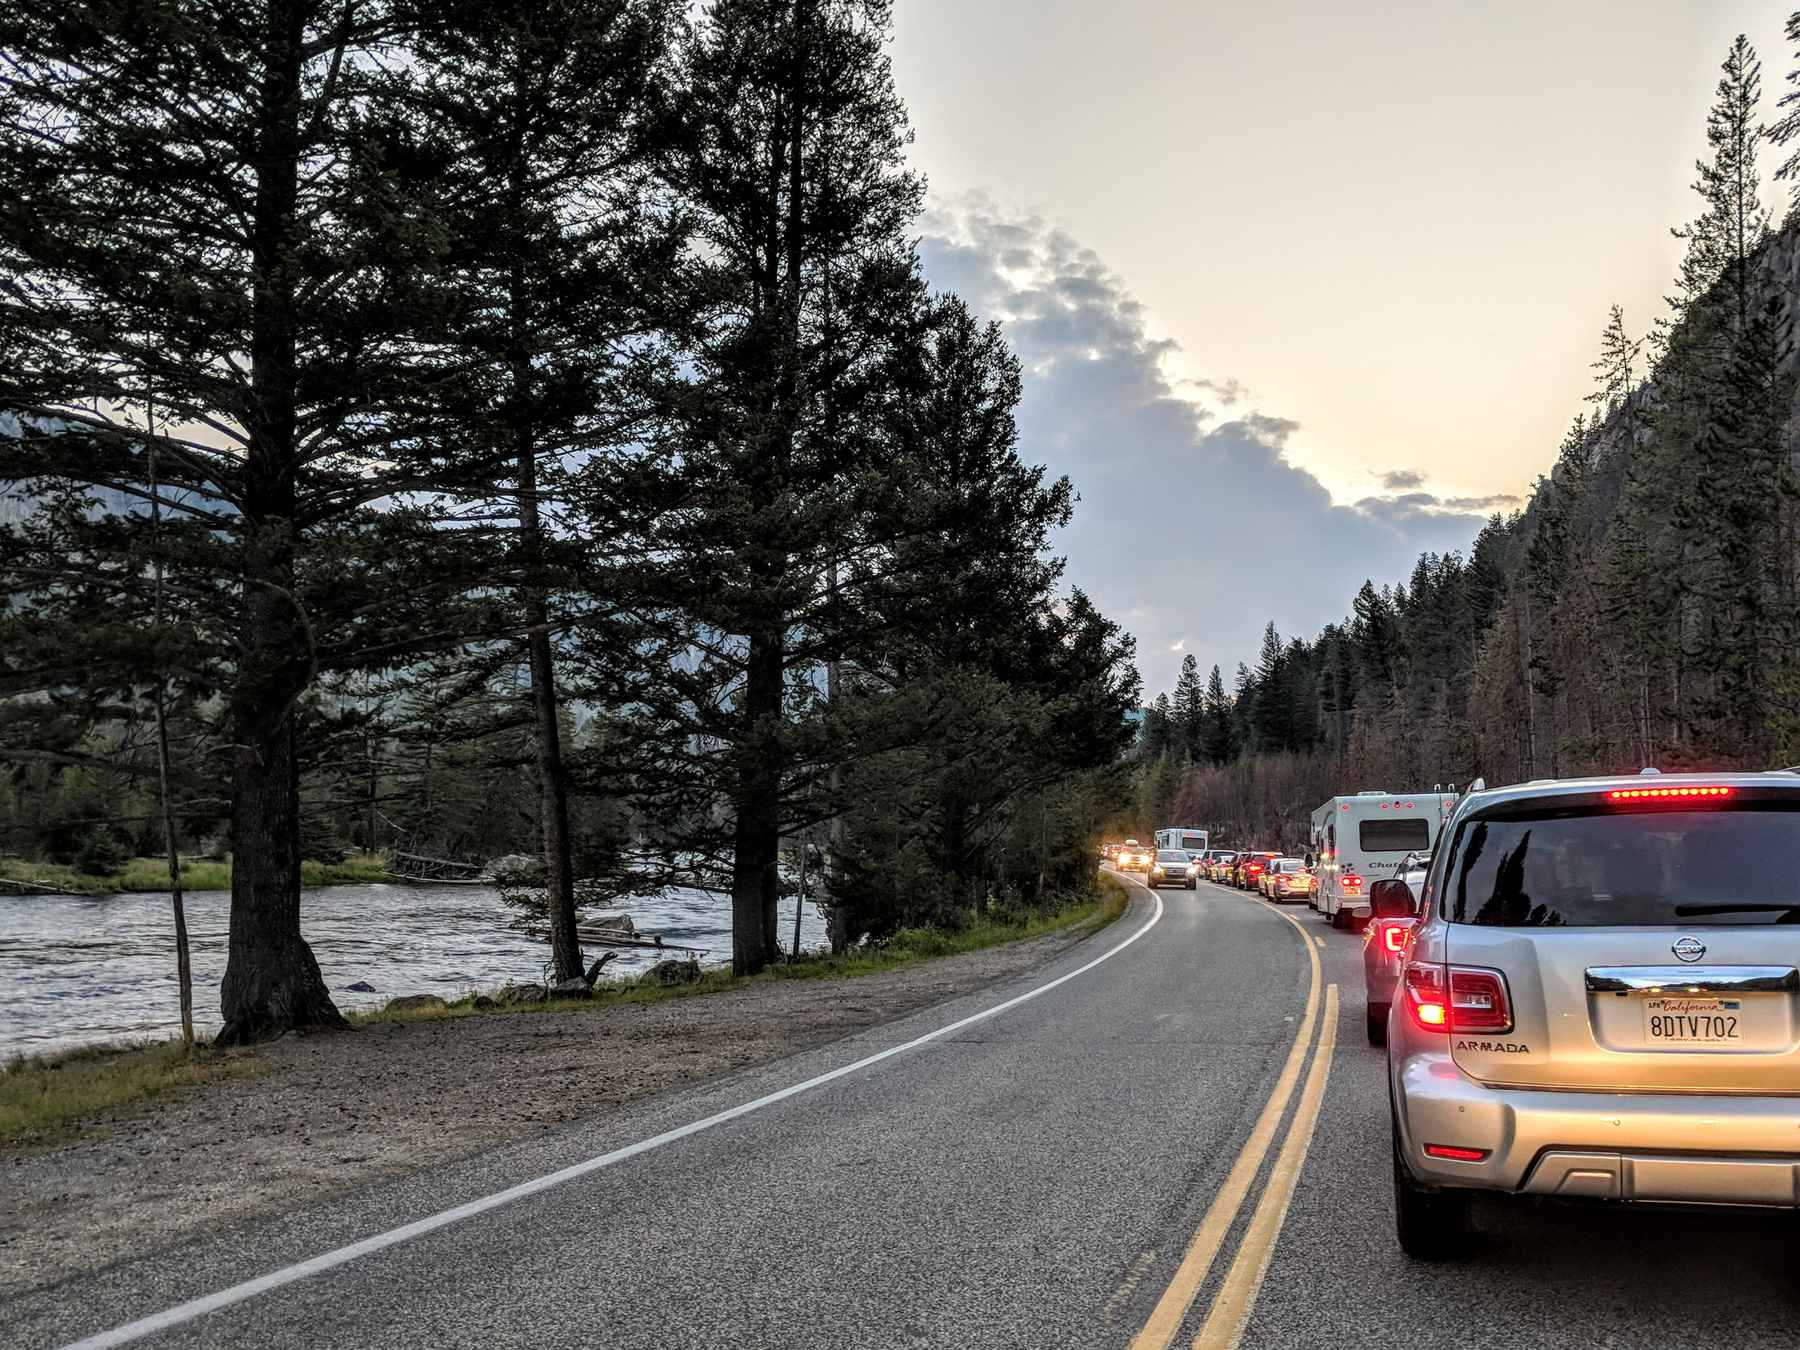 Stuck In Traffic Pondering Madisons Use >> Yellowstone Gridlock Expected To Worsen But Park Not Ready To Curb